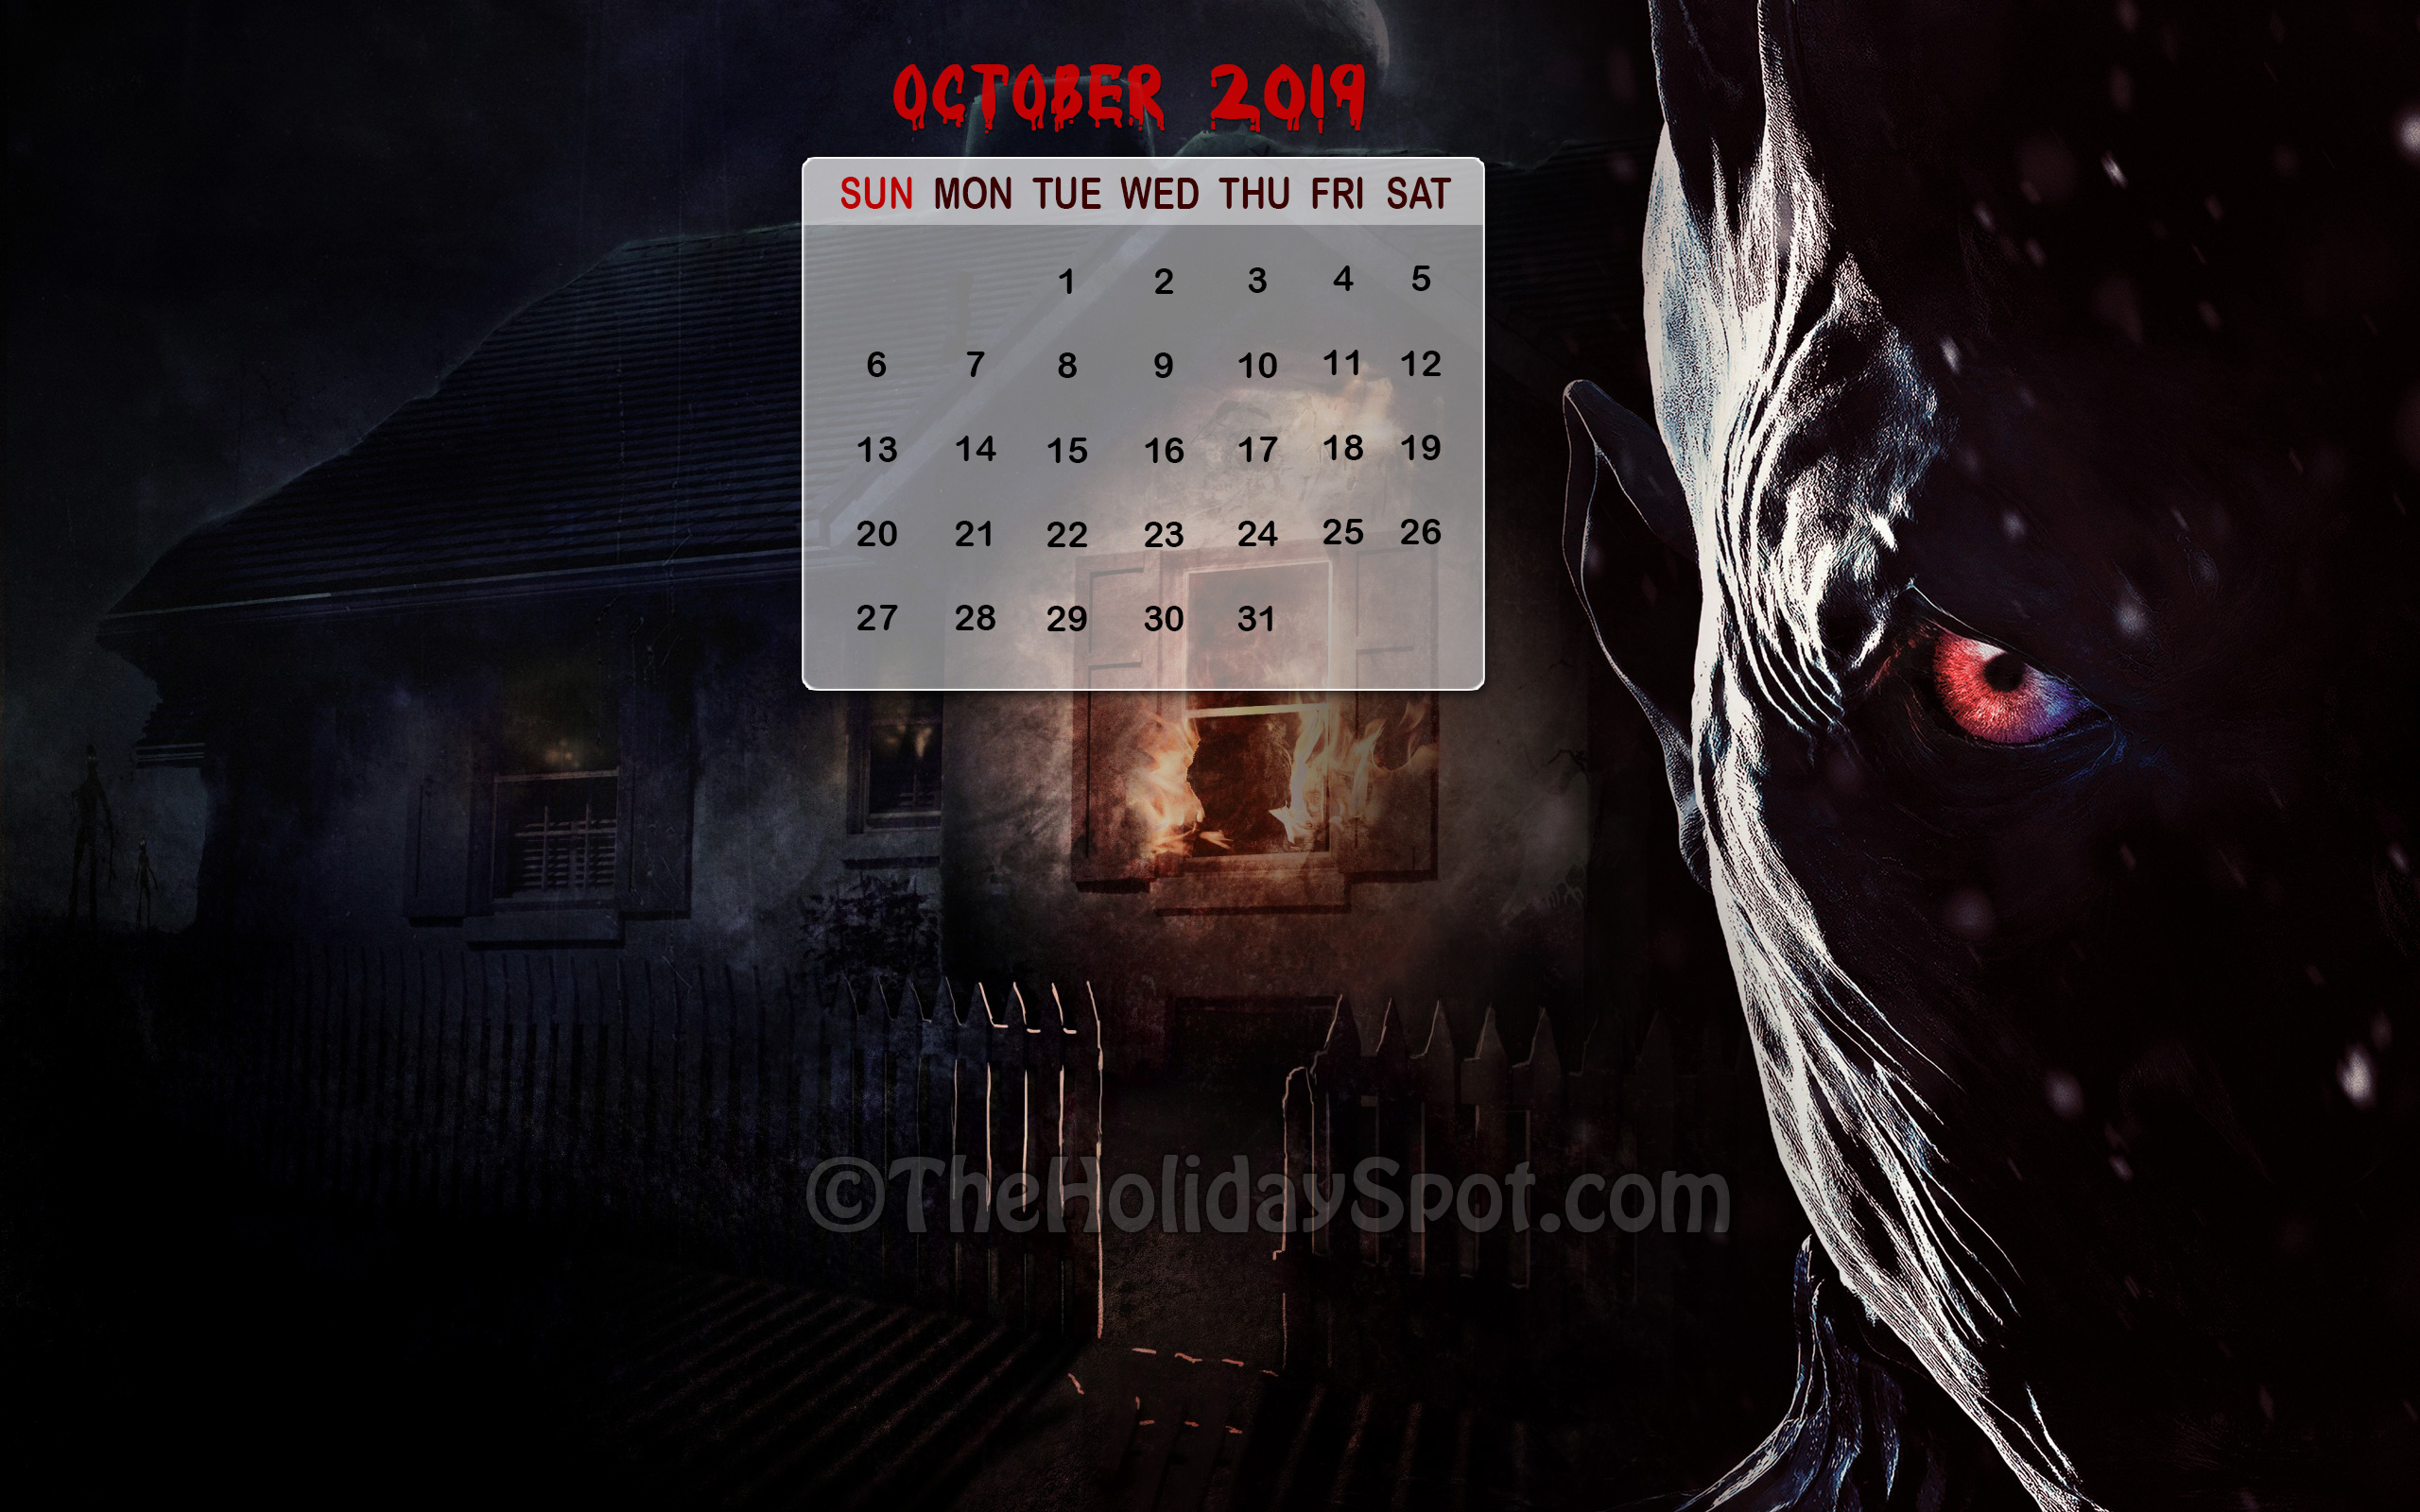 Halloween Themed Calendar Wallpaper For The Month Of - Game Of Thrones Season 7 Episode 1 Torrent - HD Wallpaper